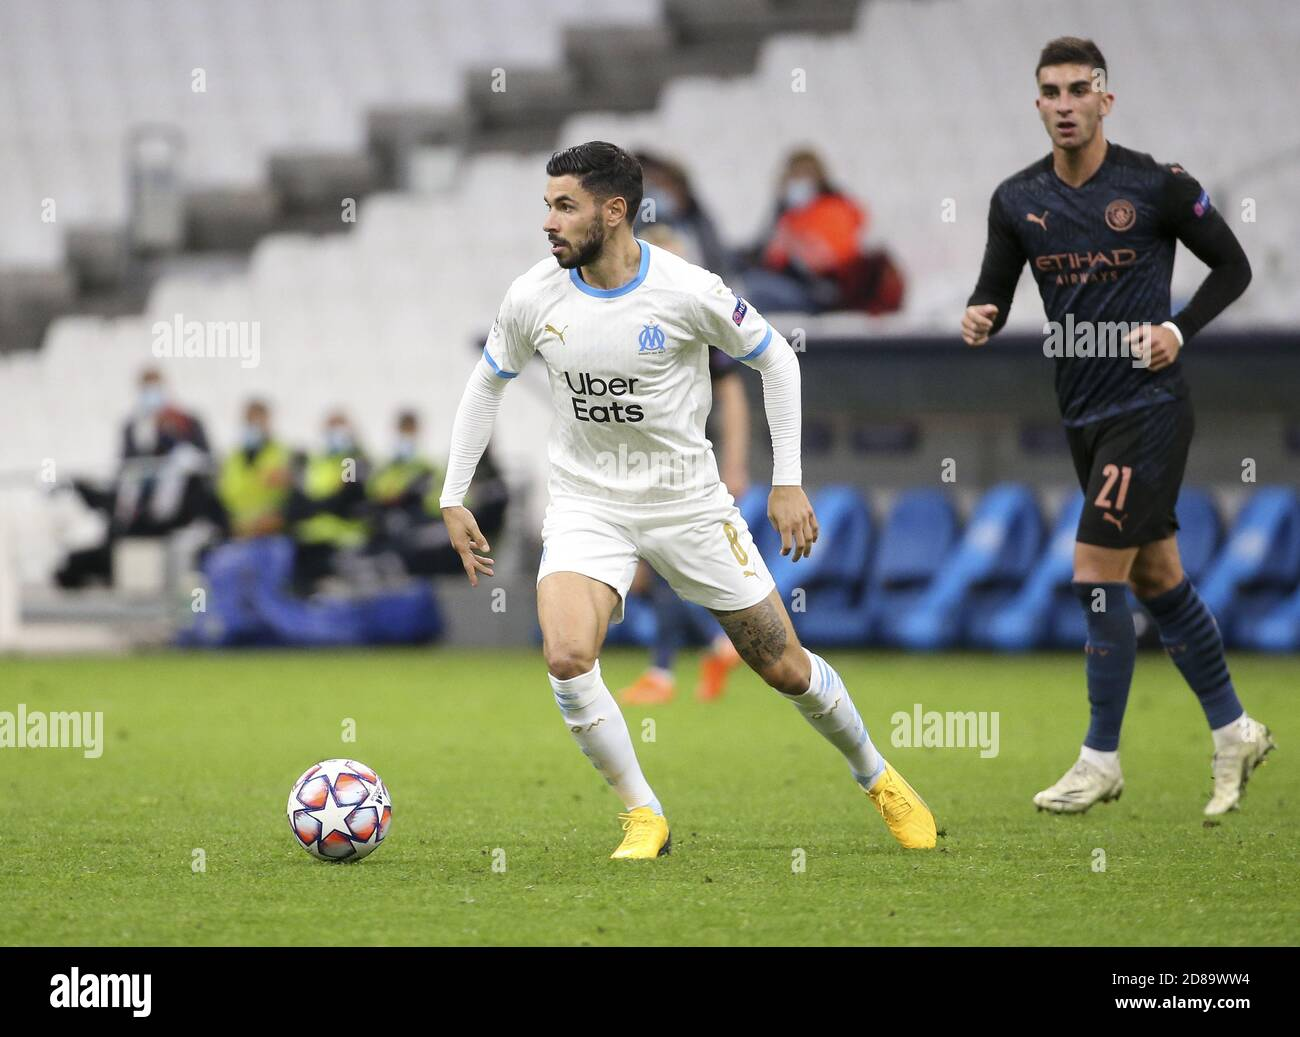 Morgan Sanson High Resolution Stock Photography and Images - Alamy